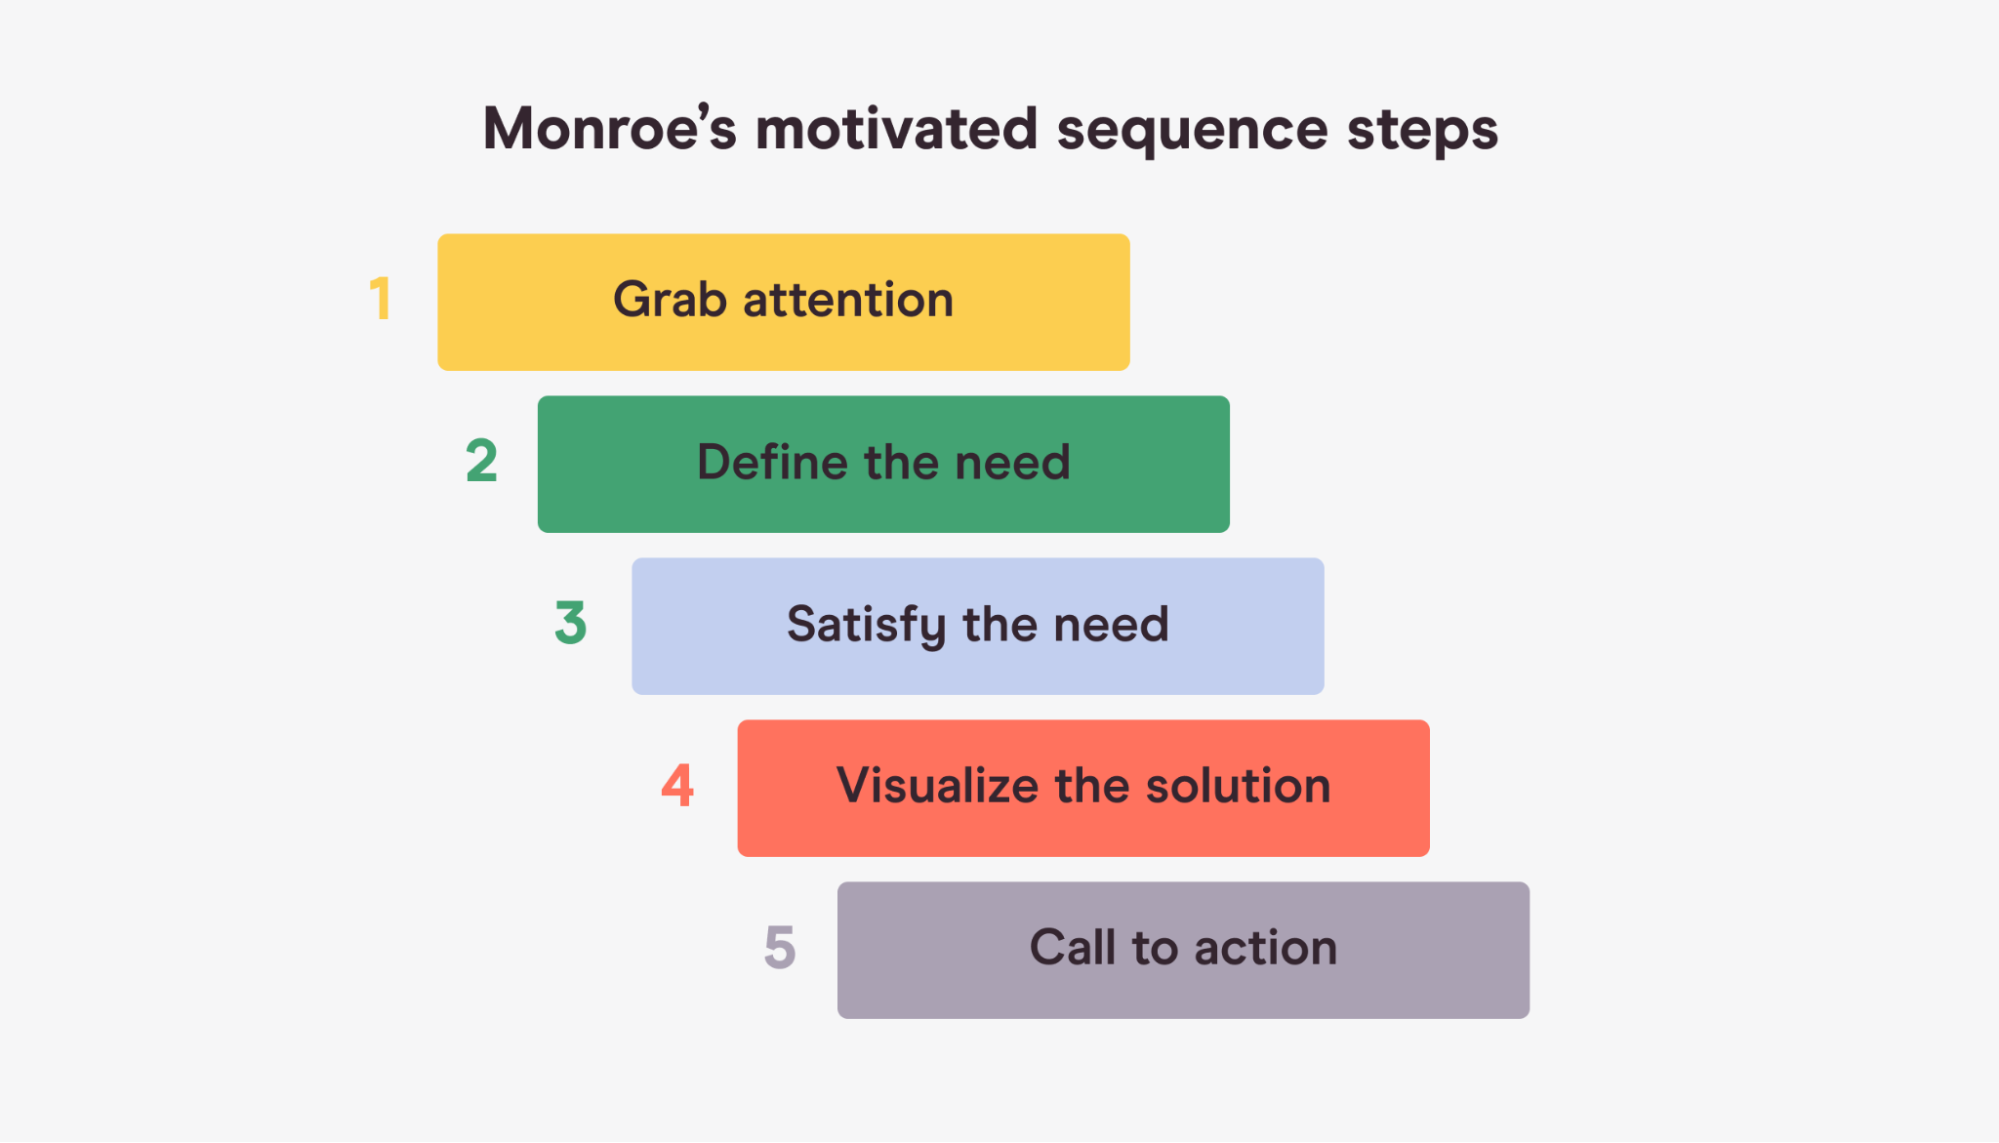 Representation of Monroe's motivated sequence steps